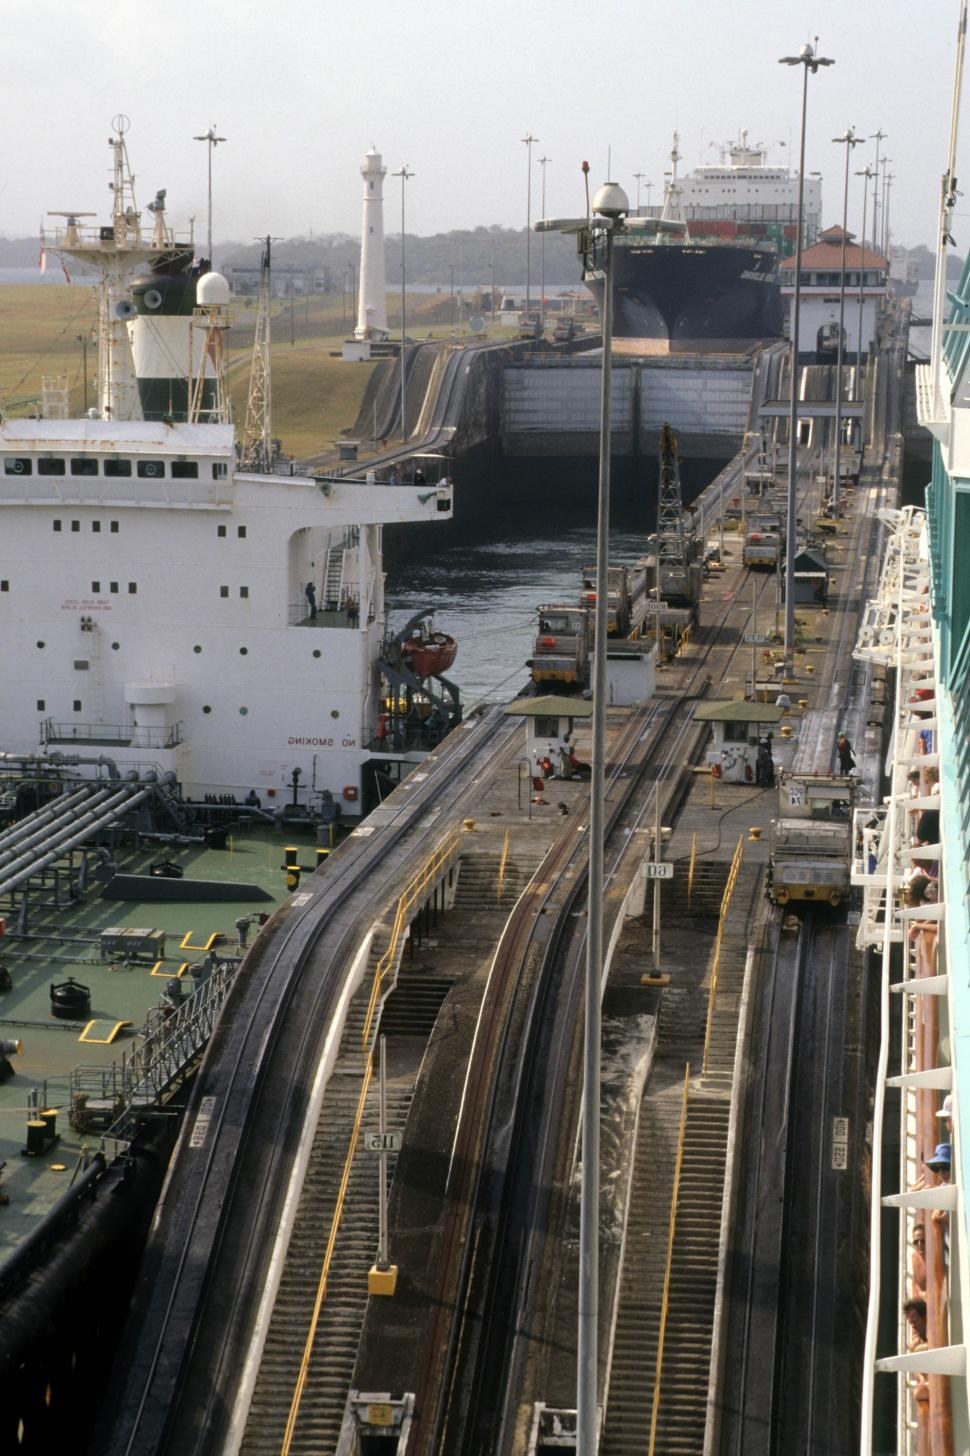 Download Free Stock HD Photo of Filling the lock - Panama Canal Online